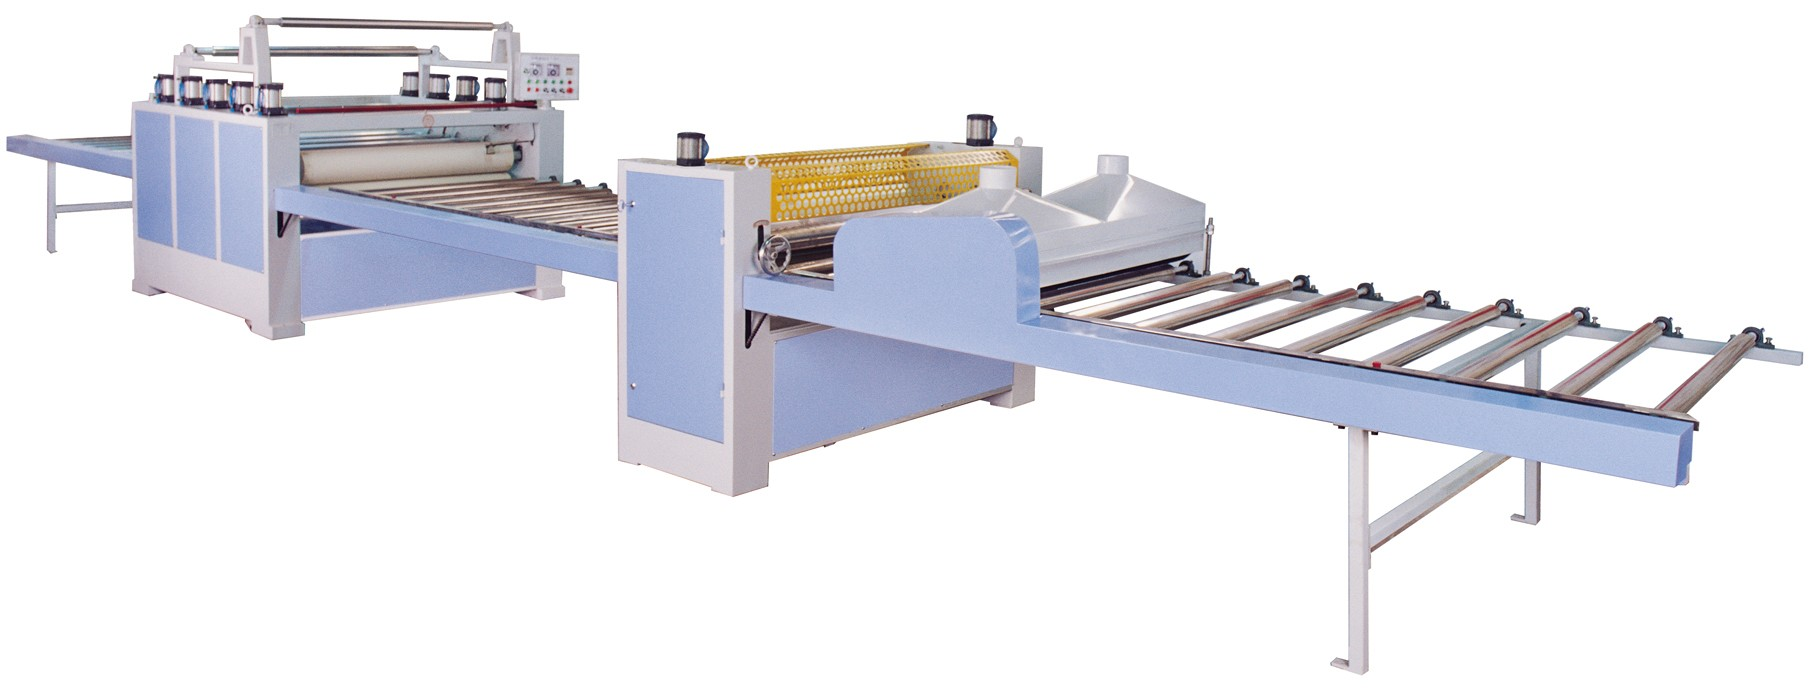 Panel Lamination Machine And Line Manufacturers, Panel Lamination Machine And Line Factory, Supply Panel Lamination Machine And Line